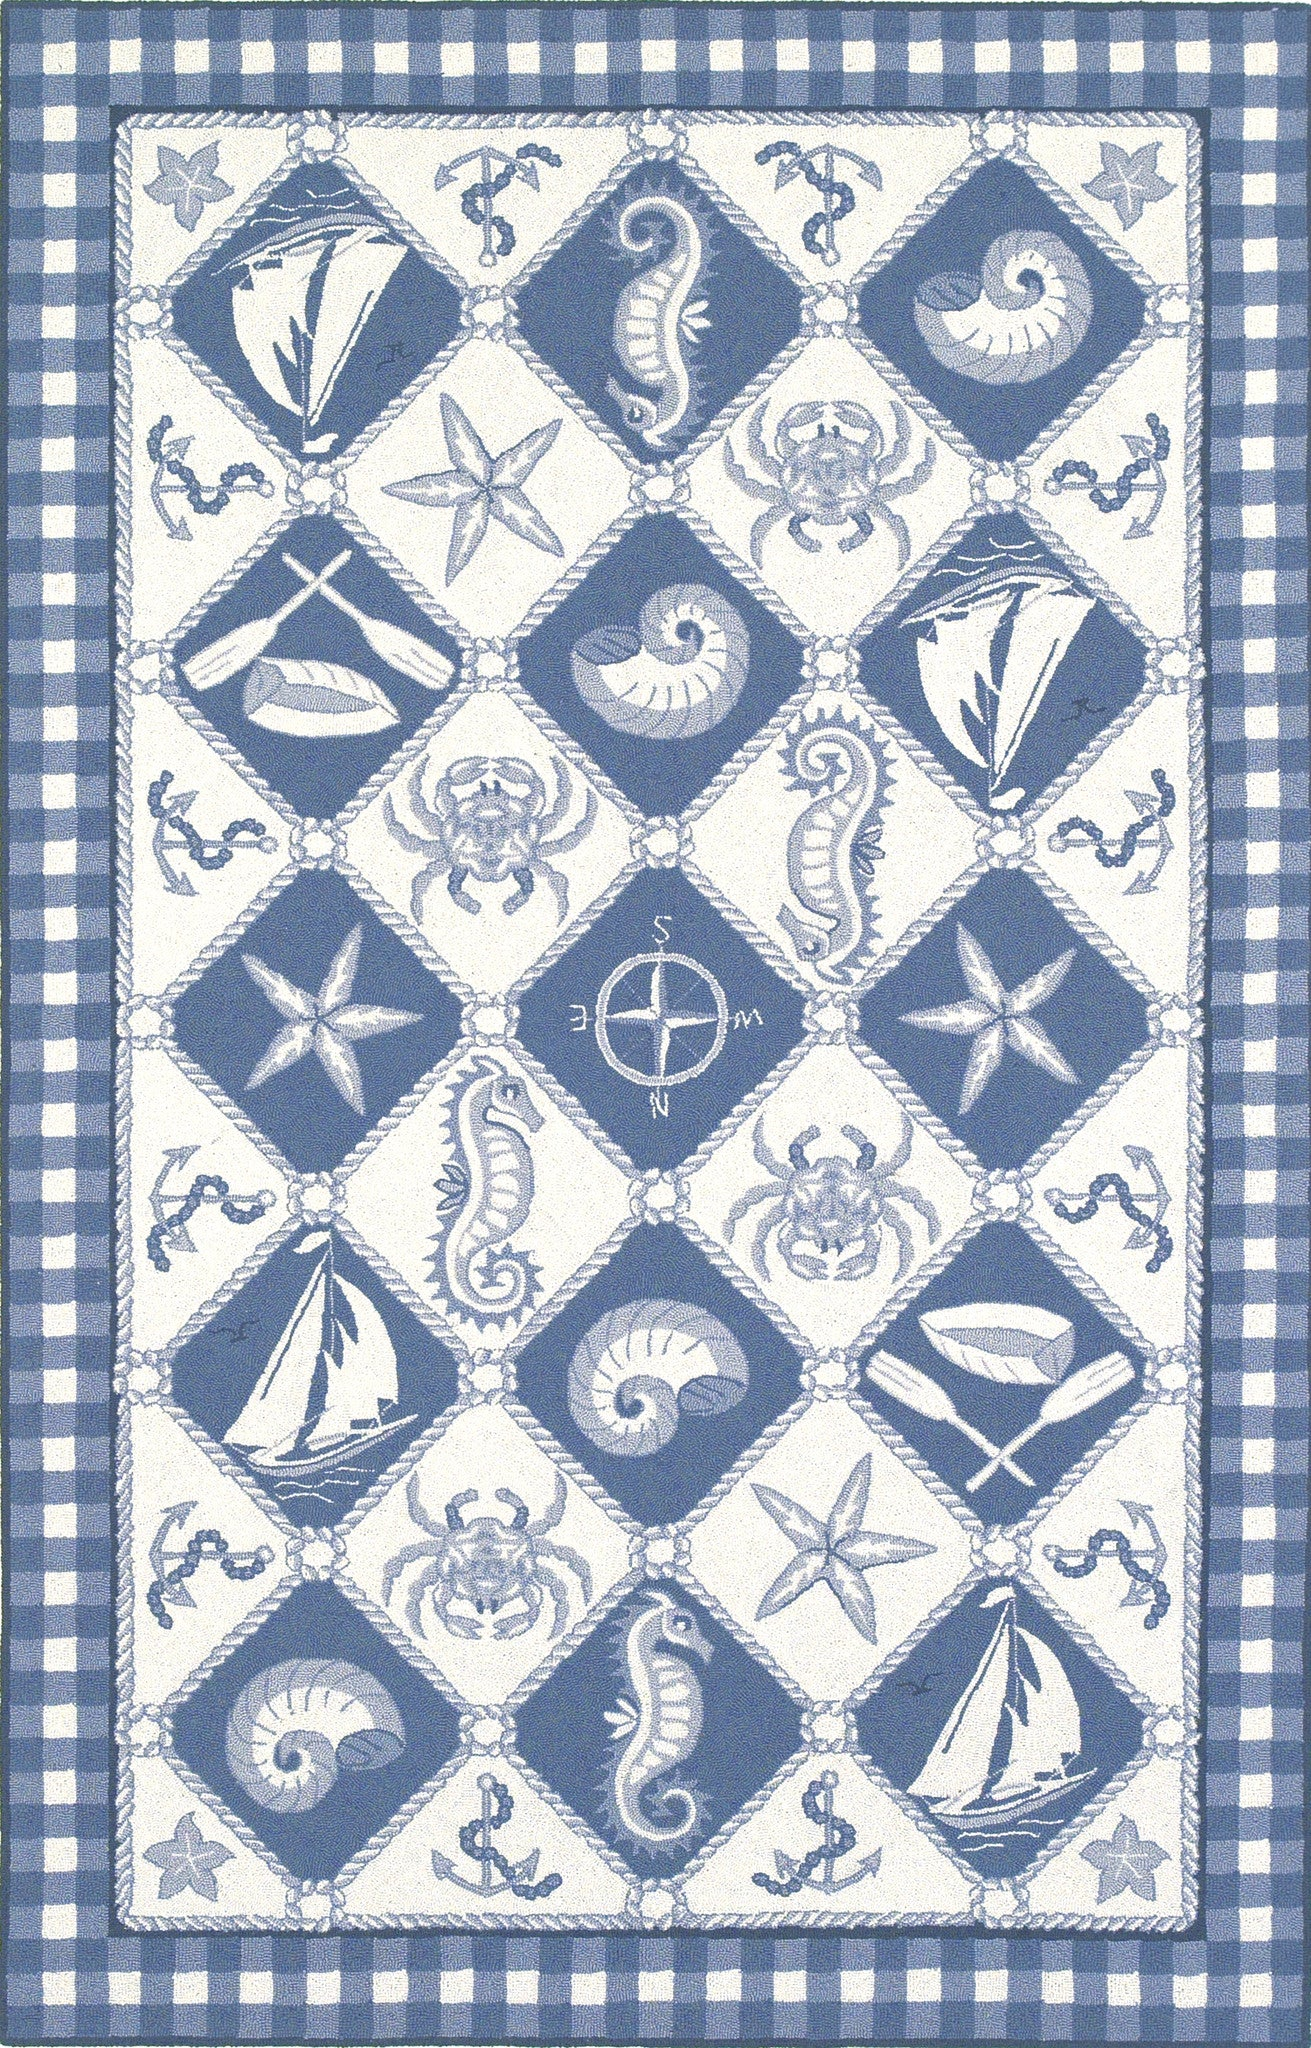 KAS Colonial 1807 Blue/Ivory Nautical Panel Hand Hooked Area Rug